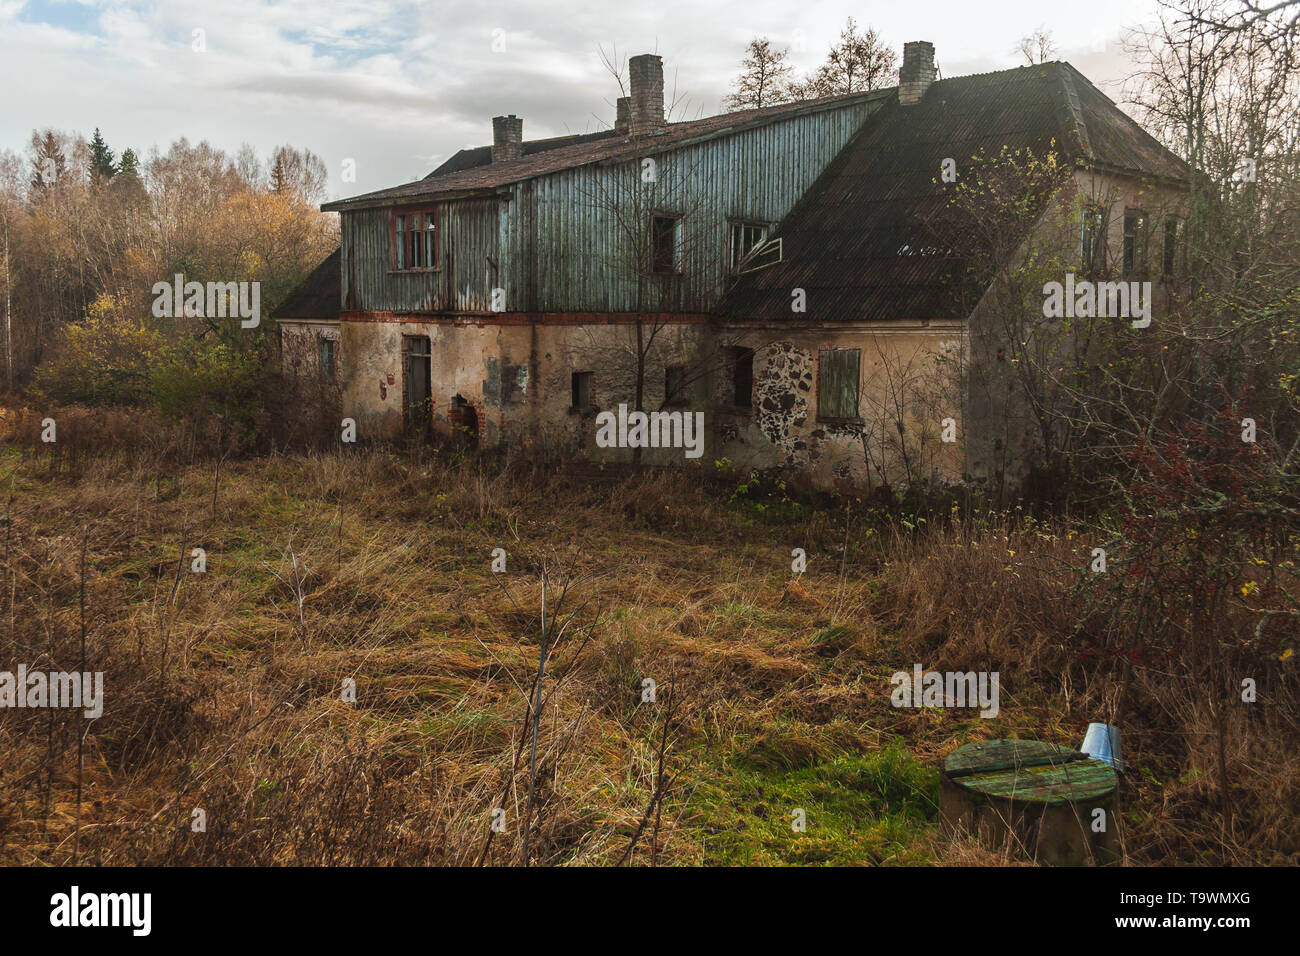 Dilapidated and abandoned former distillery from manor times in Kaleši, Latvia, and old well with metal bucket. - Stock Image